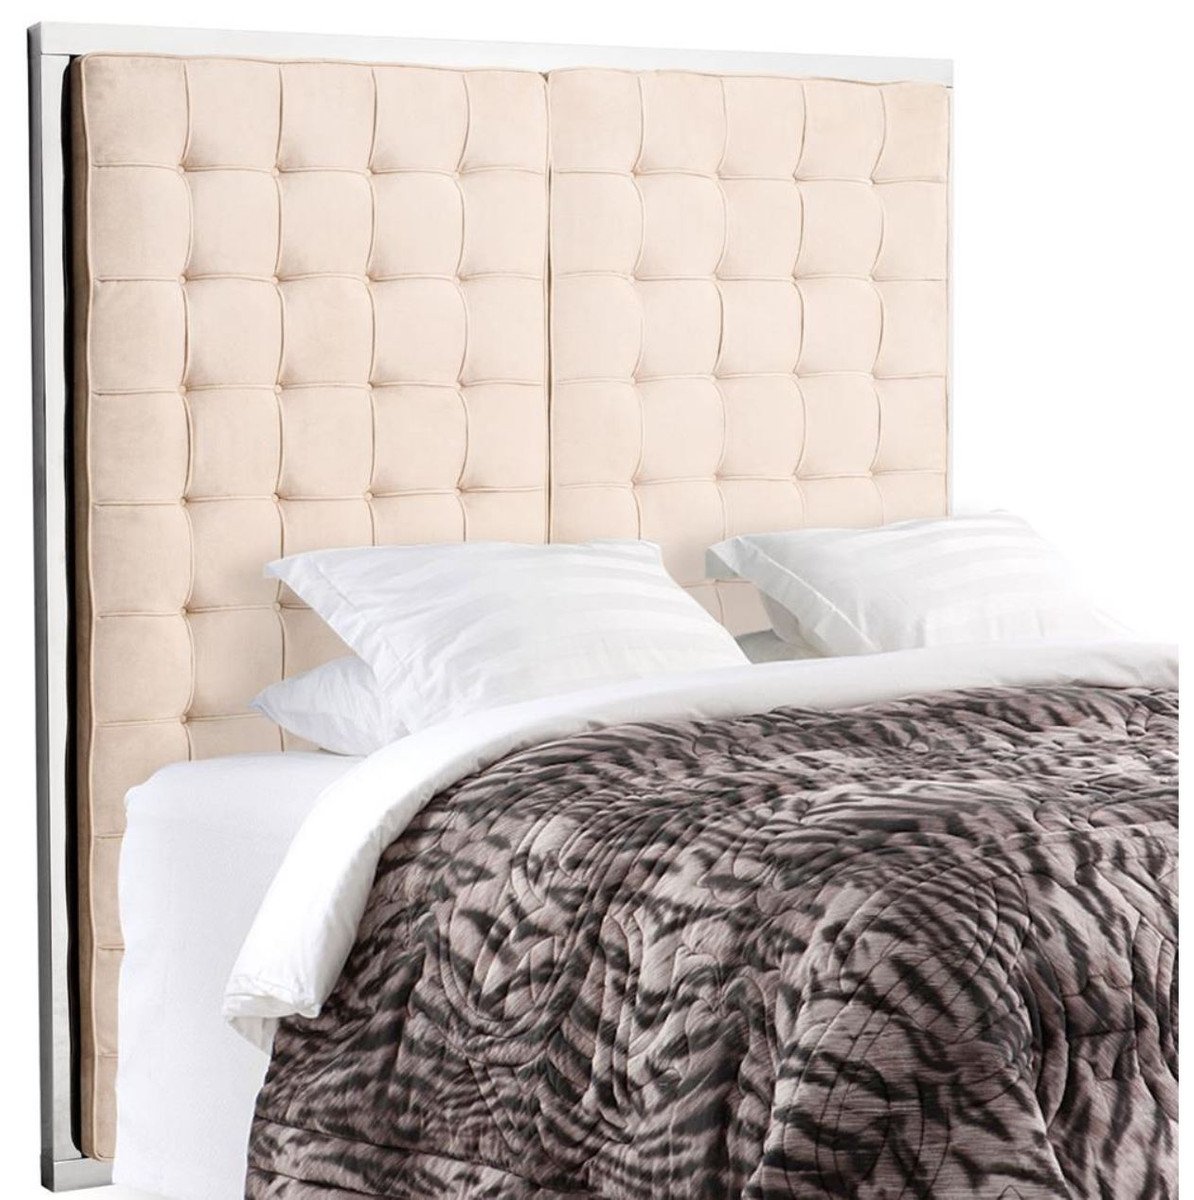 Kopfteil 180 Casa Padrino Luxury Hotel Bed Headboard Natural Color 180 X H 180 Cm Limited Edition